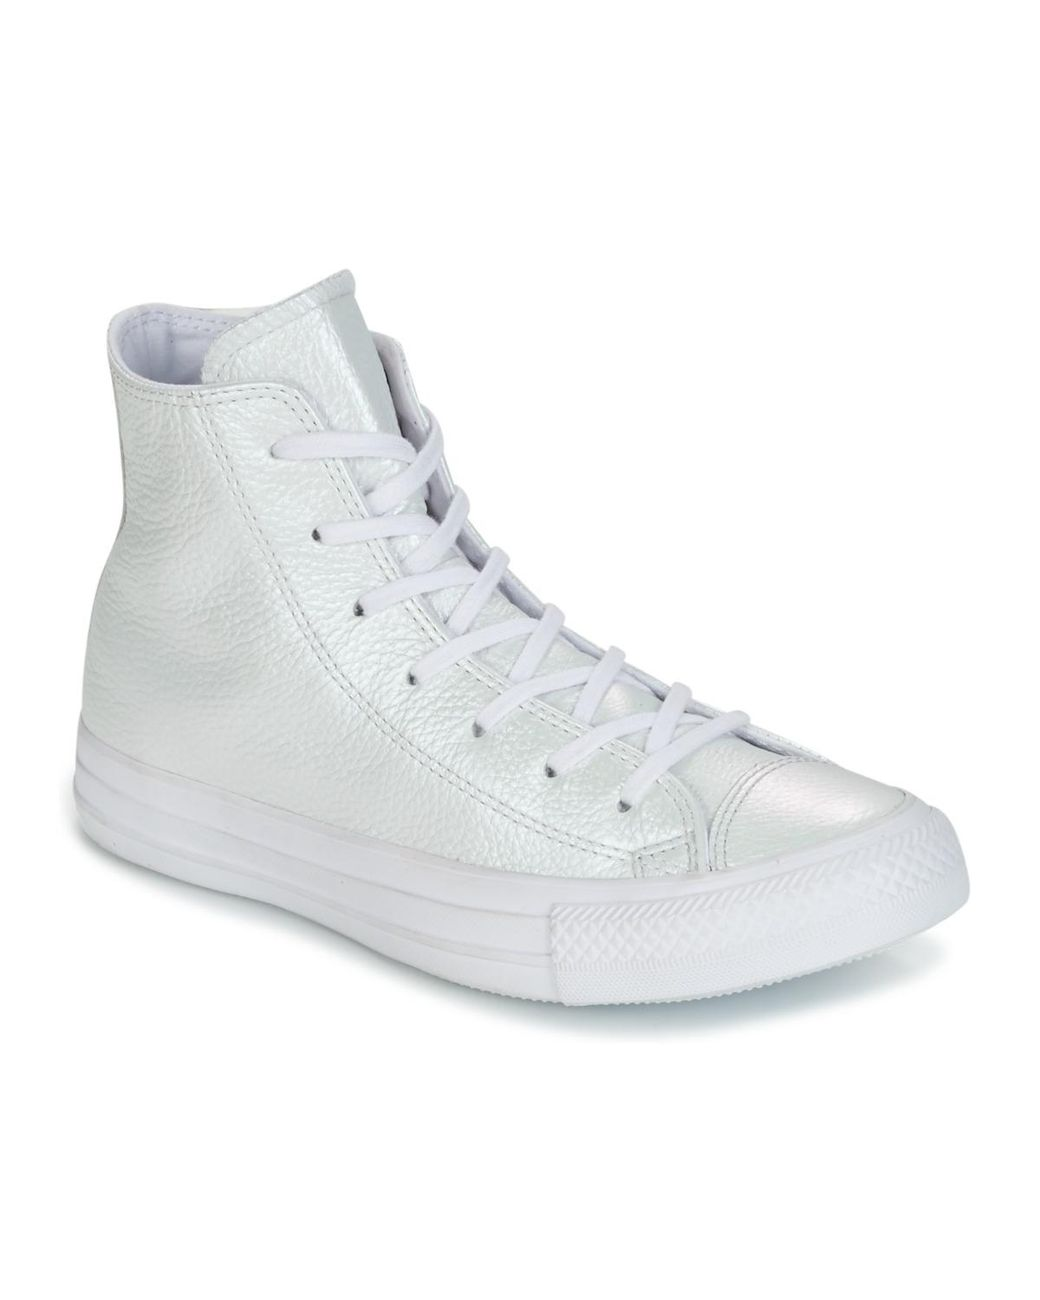 d9b0e0f36b81 Converse. Women s White Chuck Taylor All Star Iridescent Leather Hi  Iridescent Leather H Shoes (high-top Trainers)